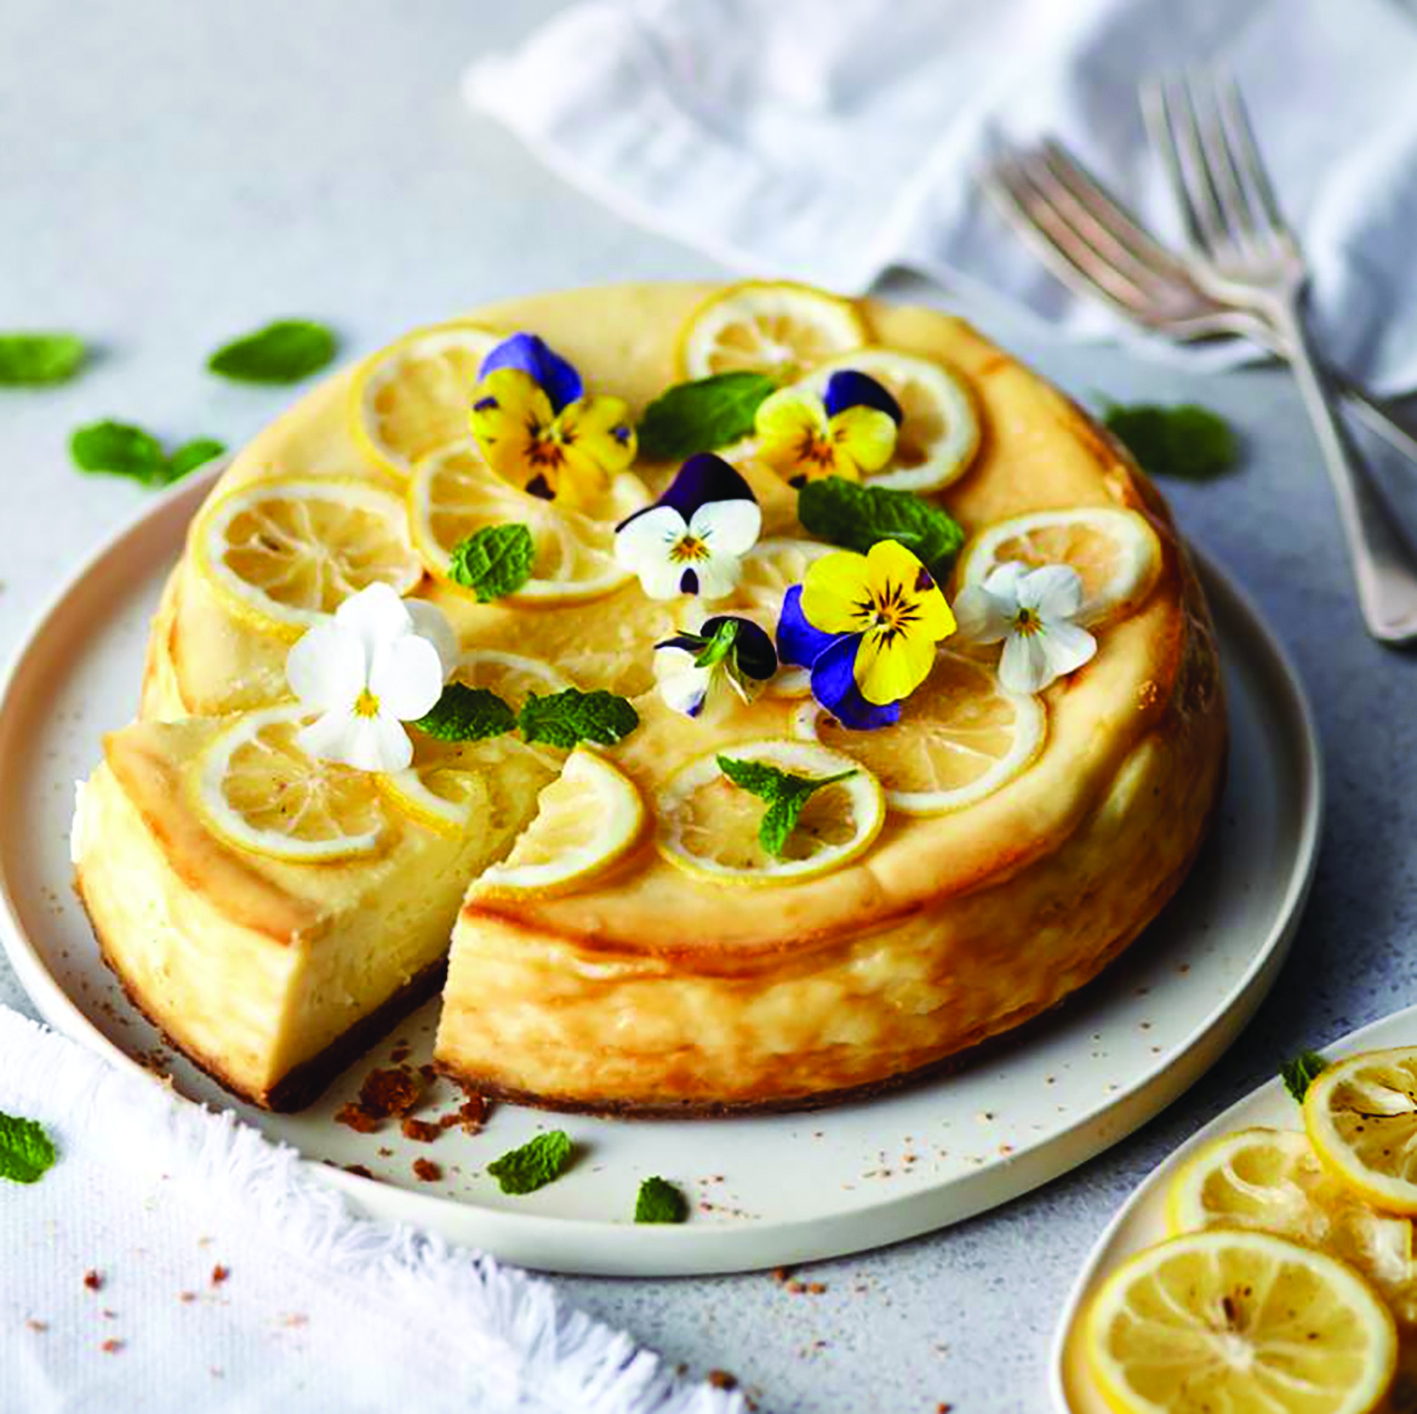 Ultimate baked lemon cheesecake recipe